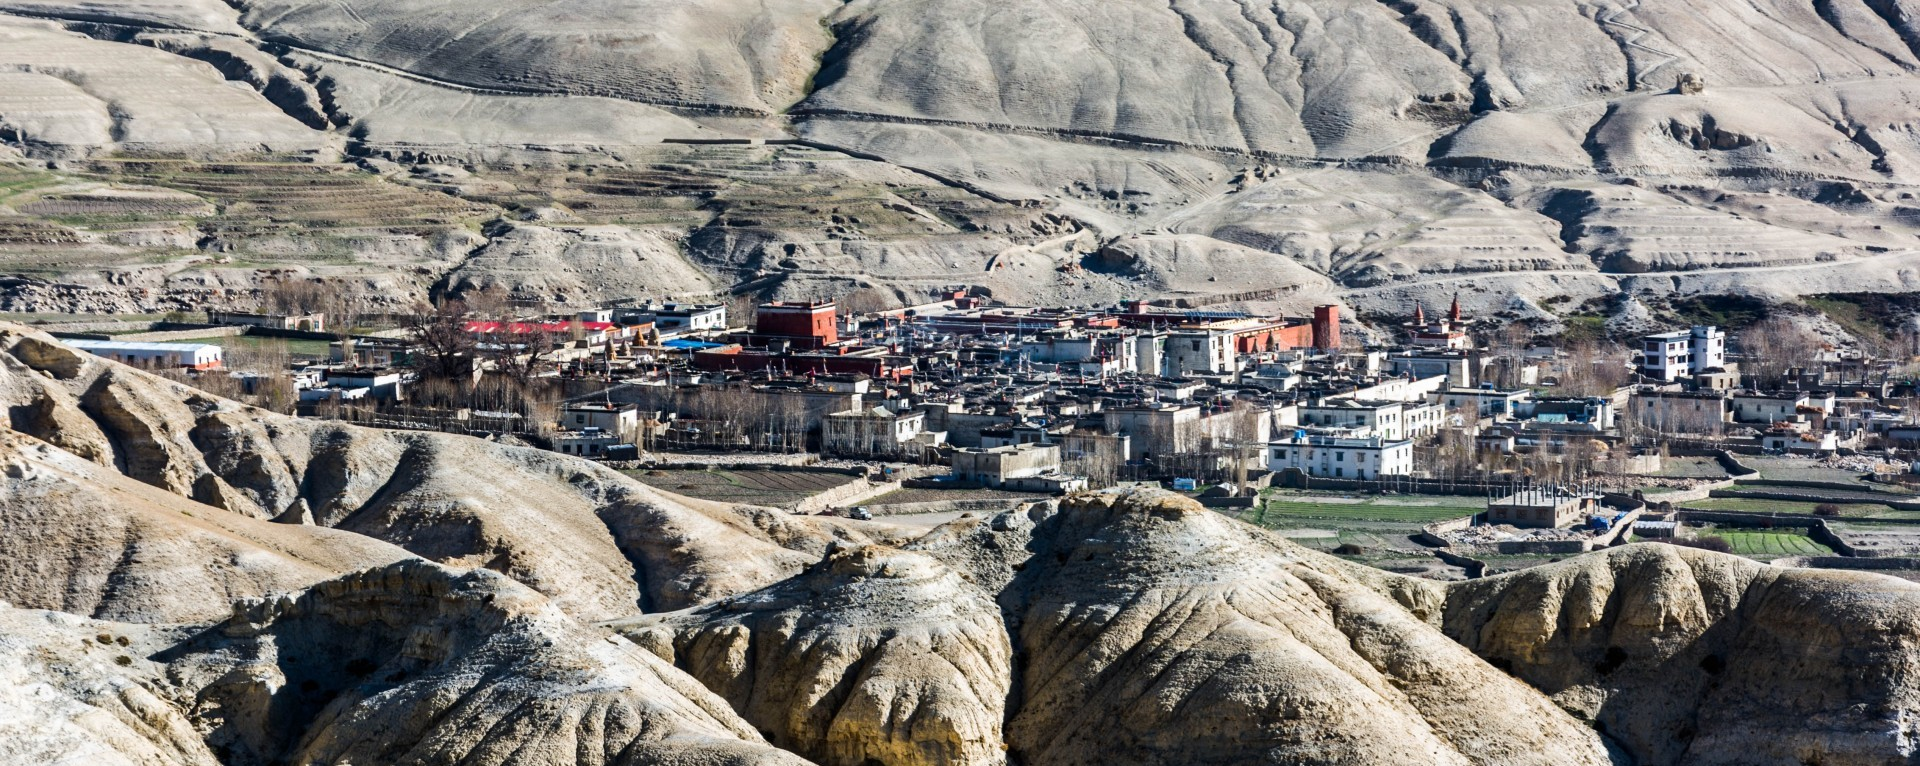 Lo Manthang Village